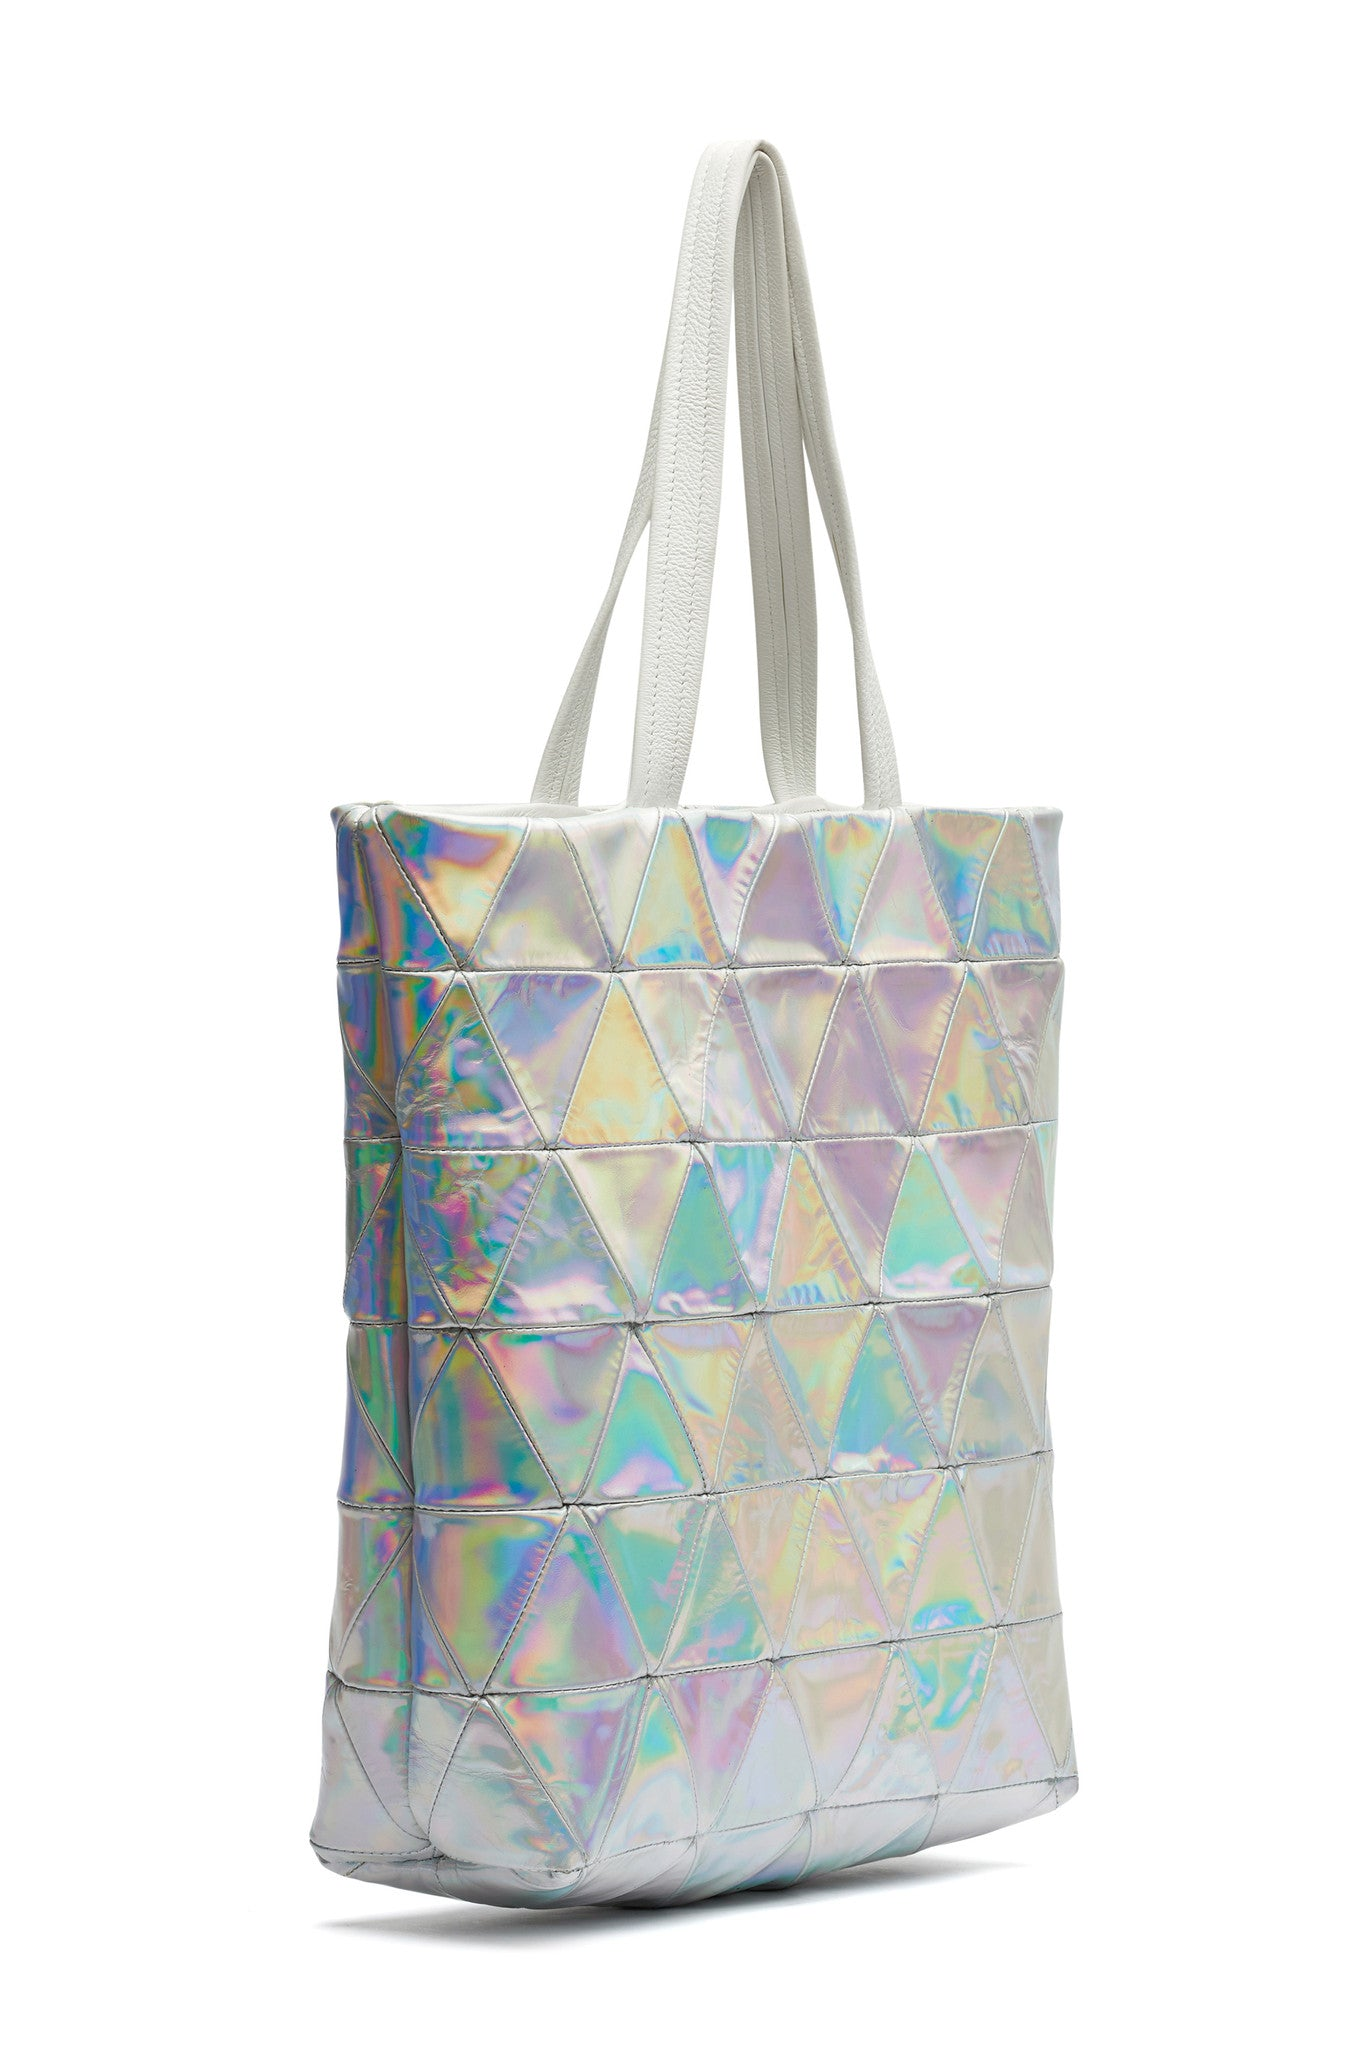 Metallic Rainbow Silver Triangle Patchwork Patent Leather Tote Wendy Nichol Handbag Purse Designer Handmade in NYC